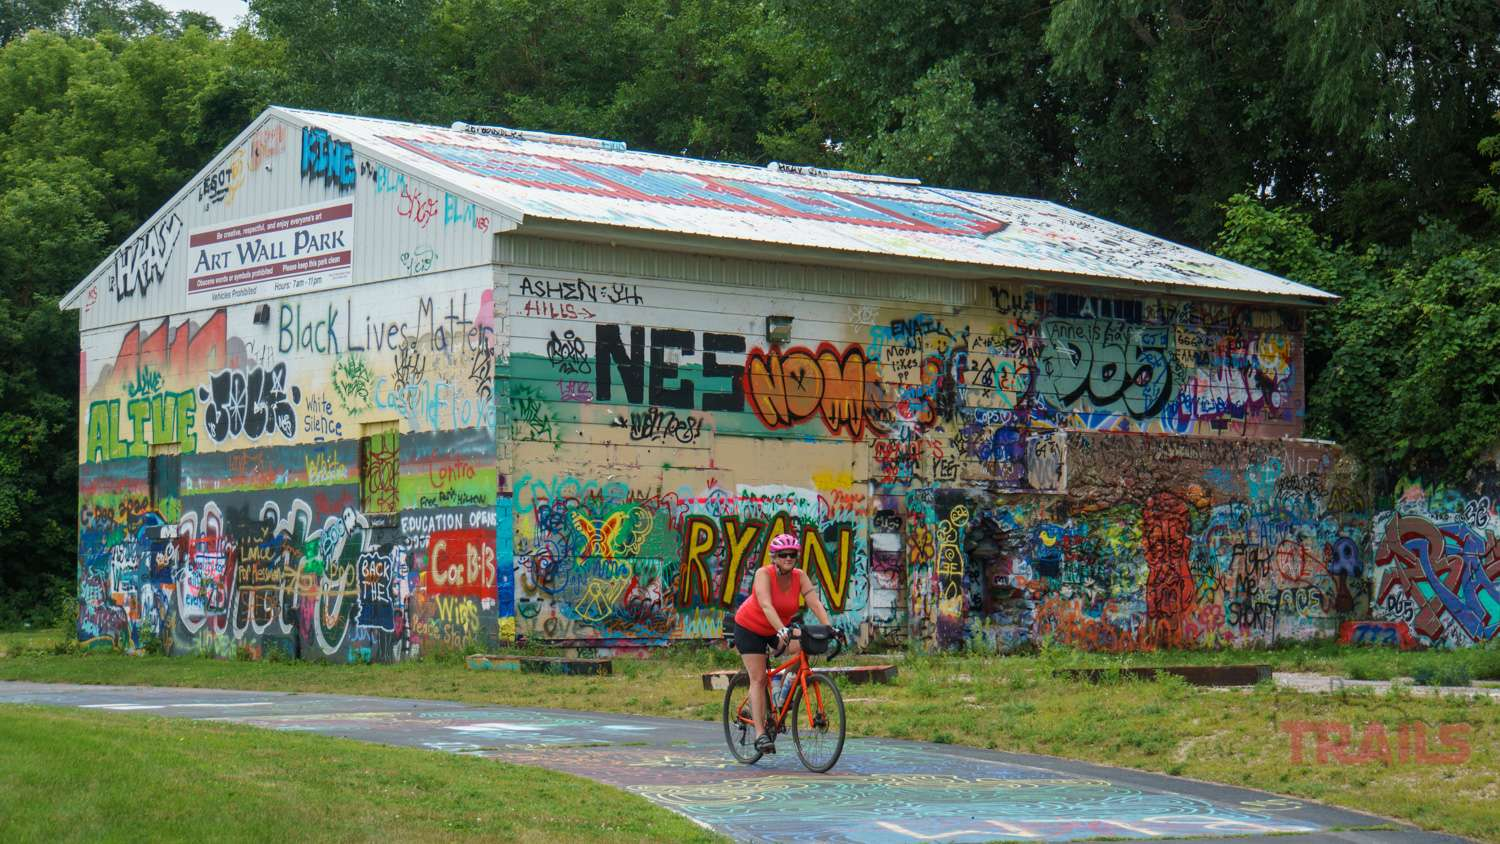 A woman rides a bike in front of a building covered in graffiti